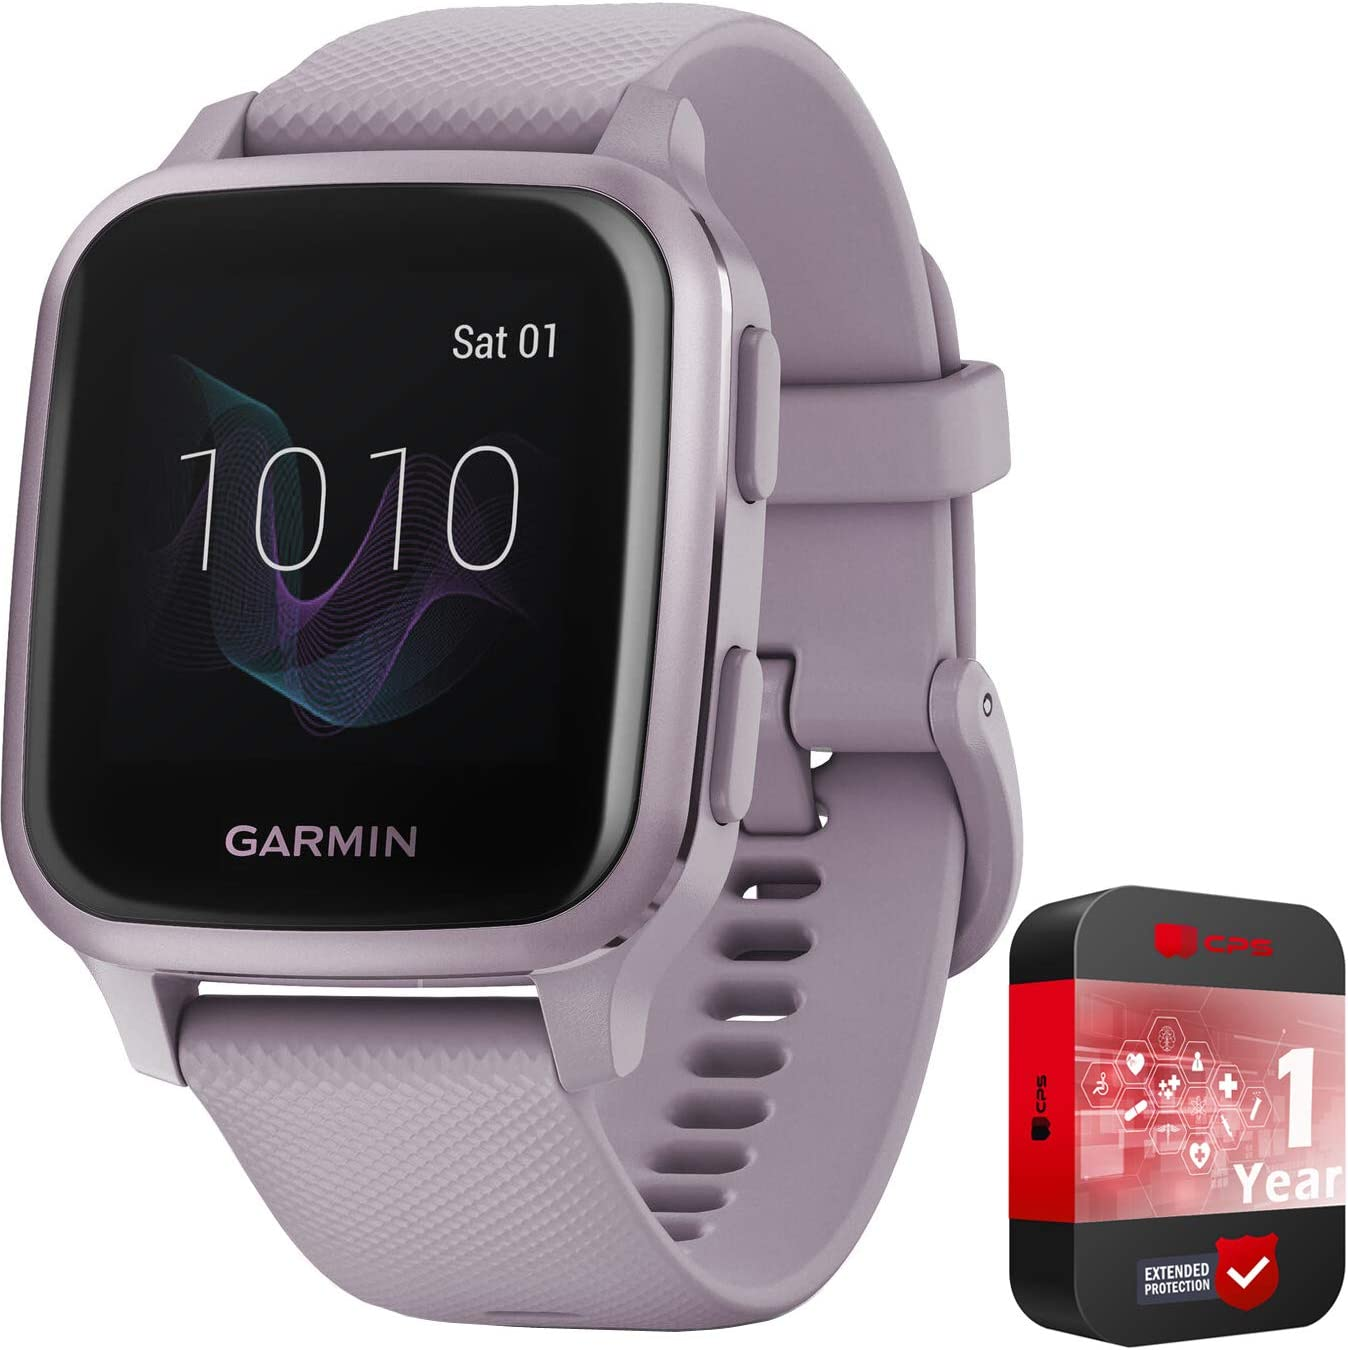 Garmin 010-02427-02 Venu Sq, Metallic Orchid Aluminum Bezel with Orchid Case and Silicone Band Bundle with 1 Year Exteded Protection Plan